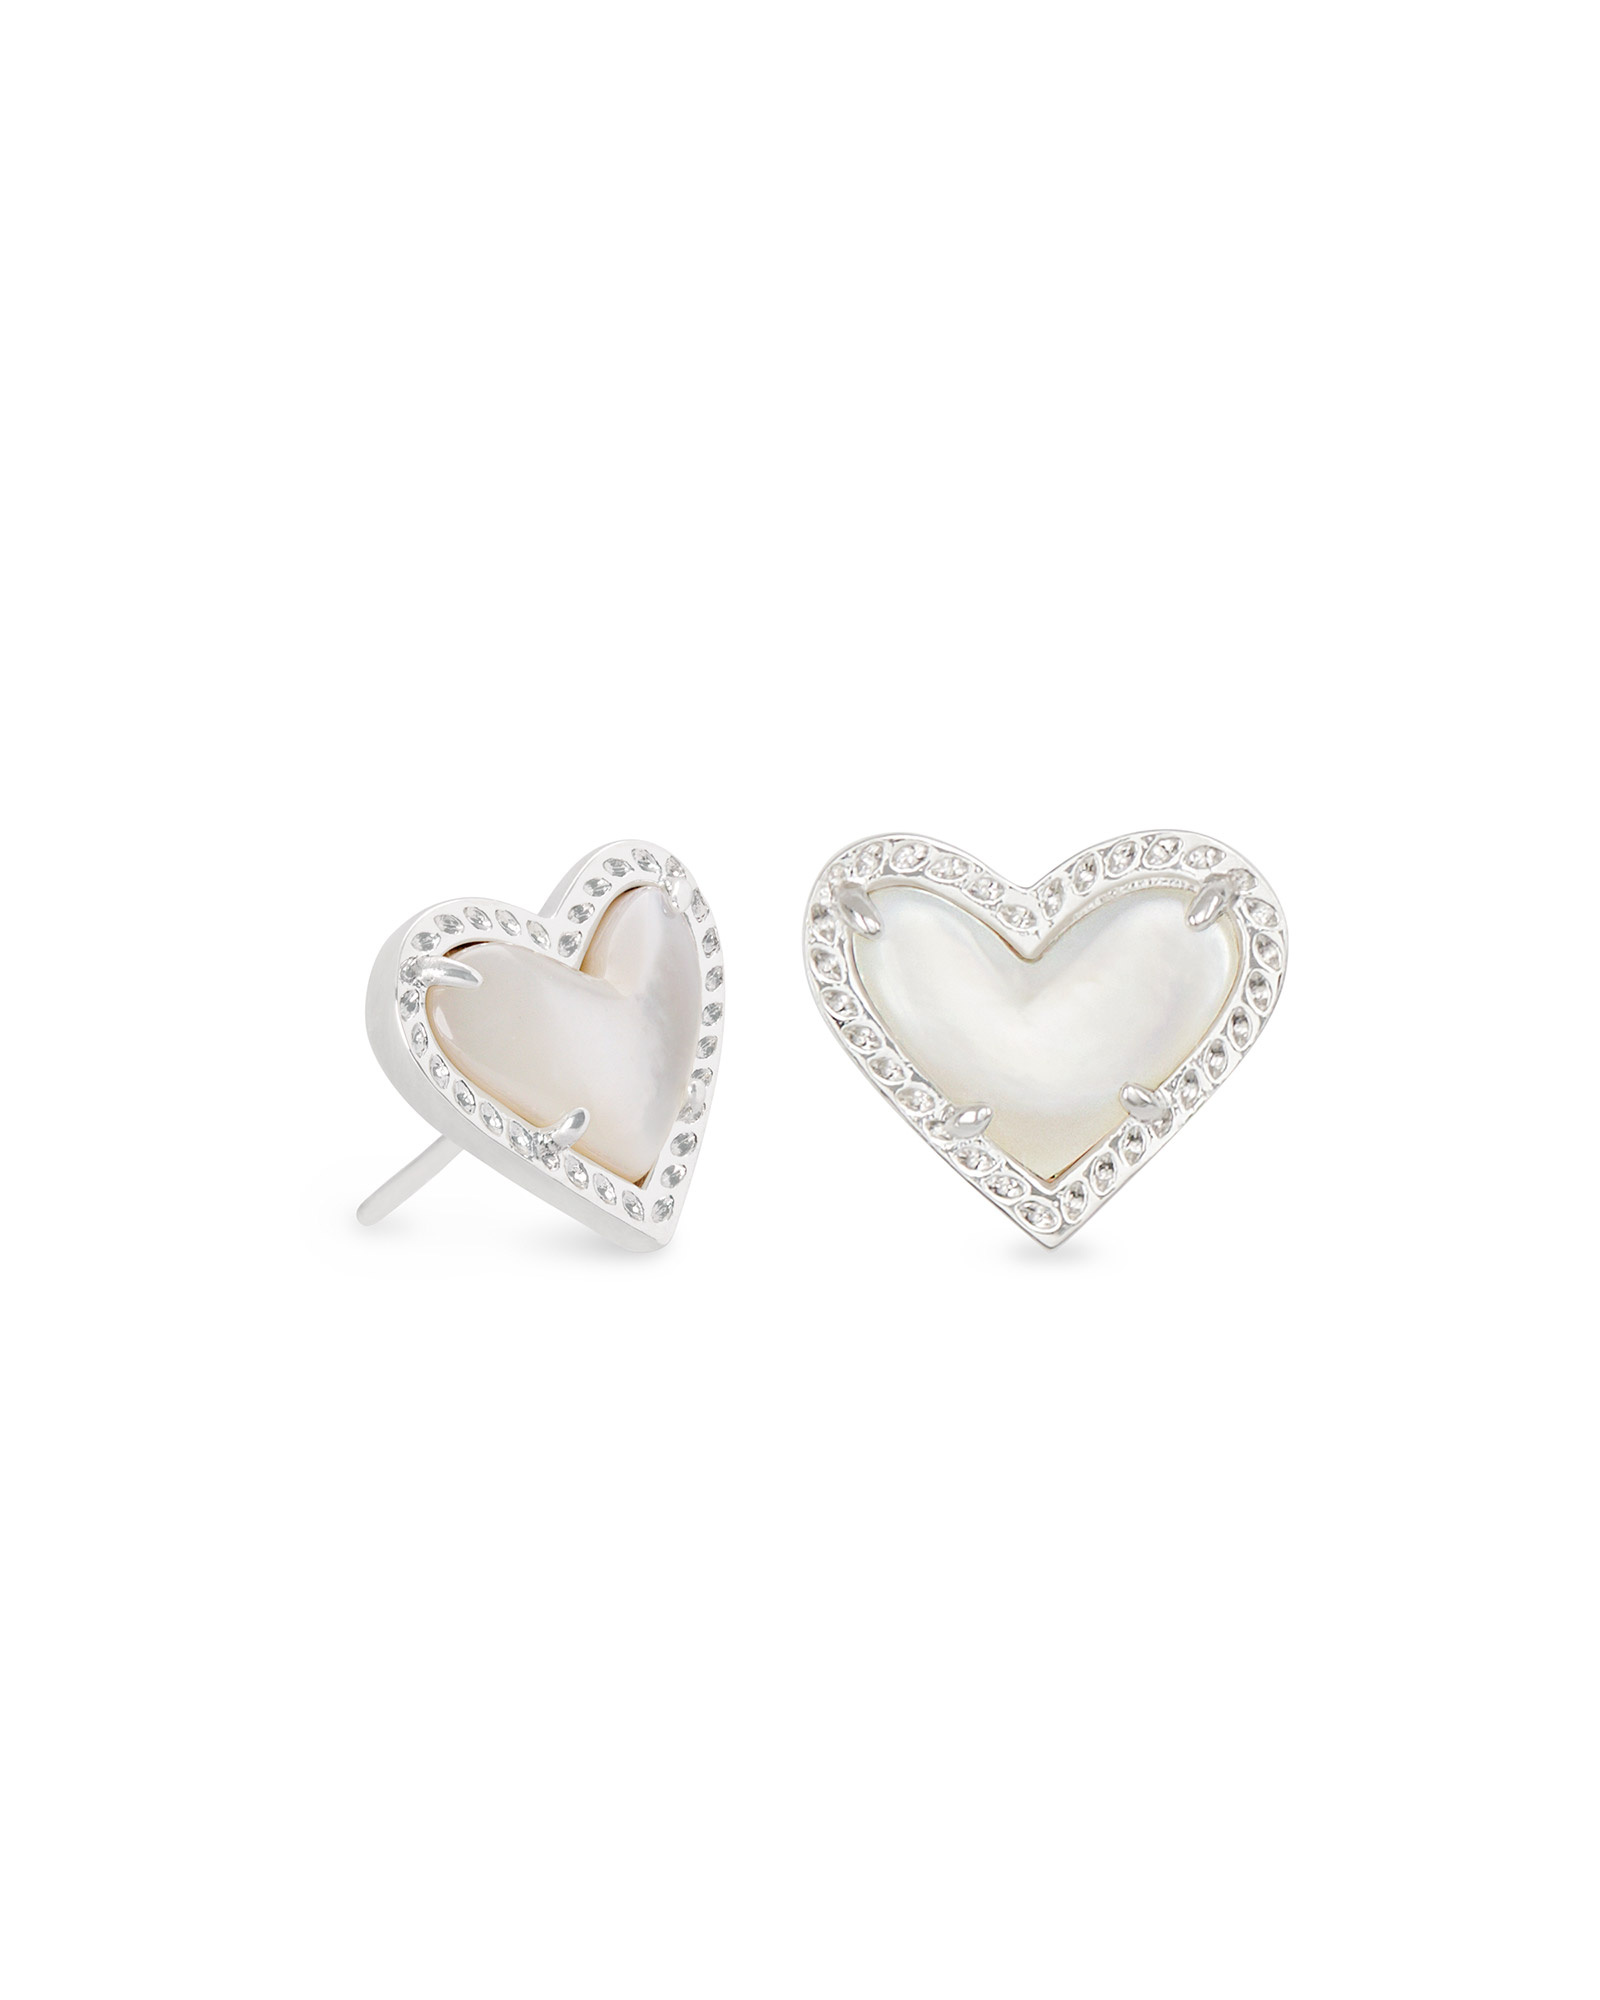 Ari Heart Silver Stud Earrings in Ivory Mother-of-Pearl